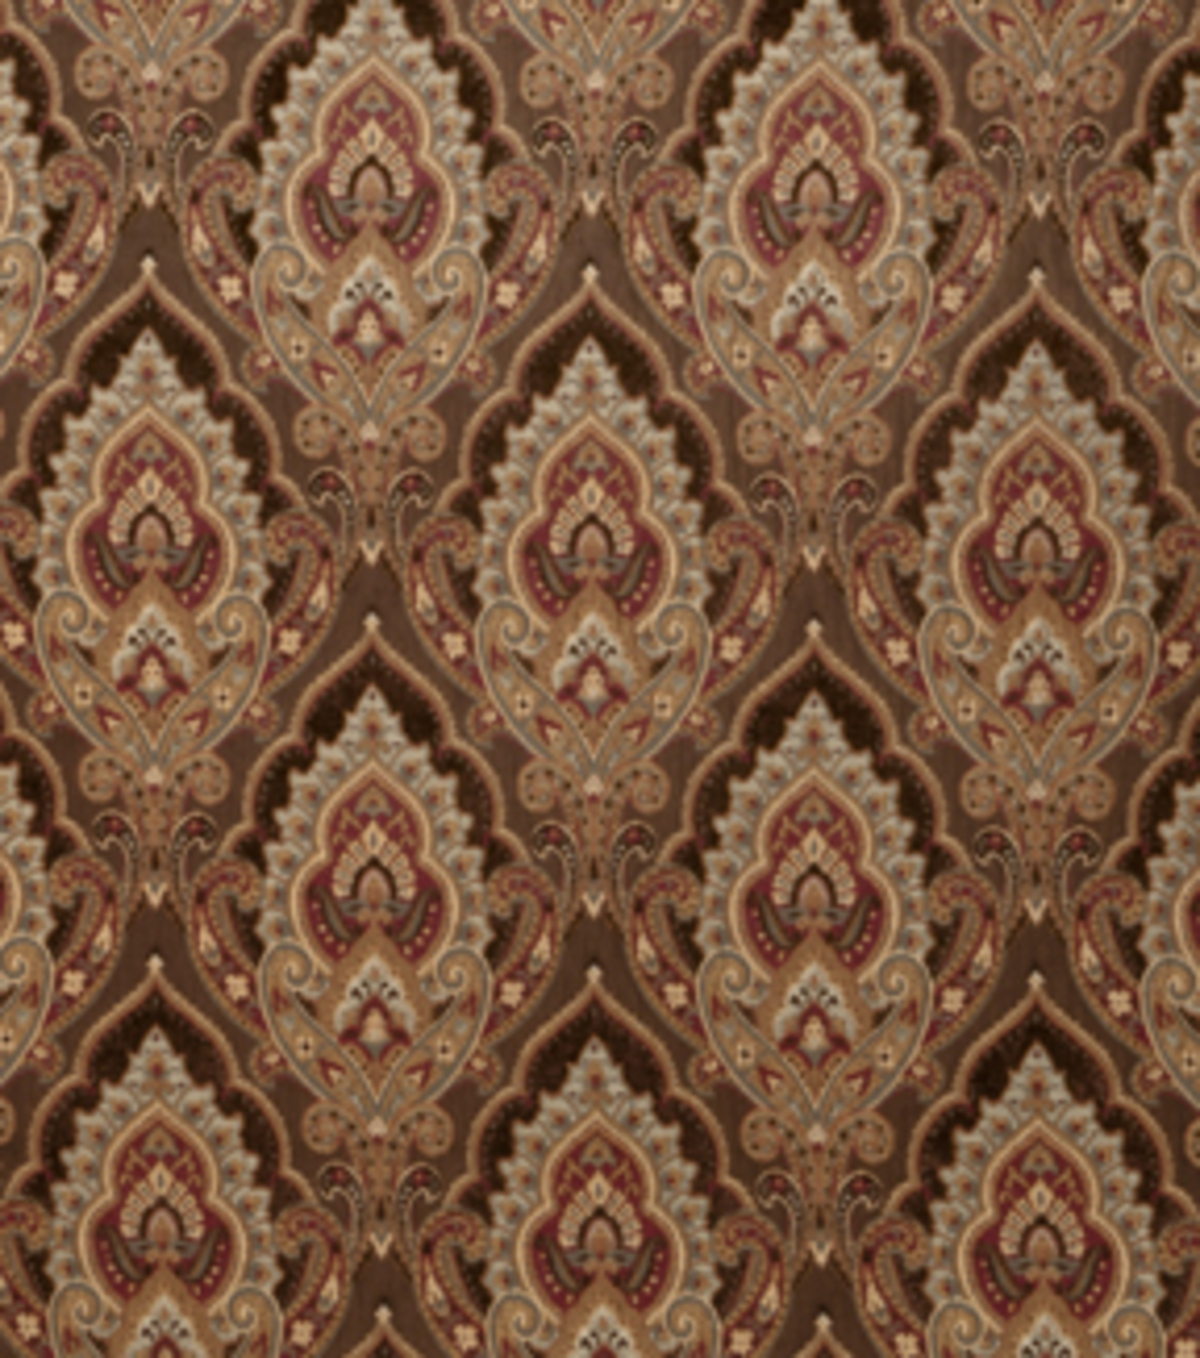 Home Decor 8\u0022x8\u0022 Fabric Swatch-Eaton Square Briefly Carnival